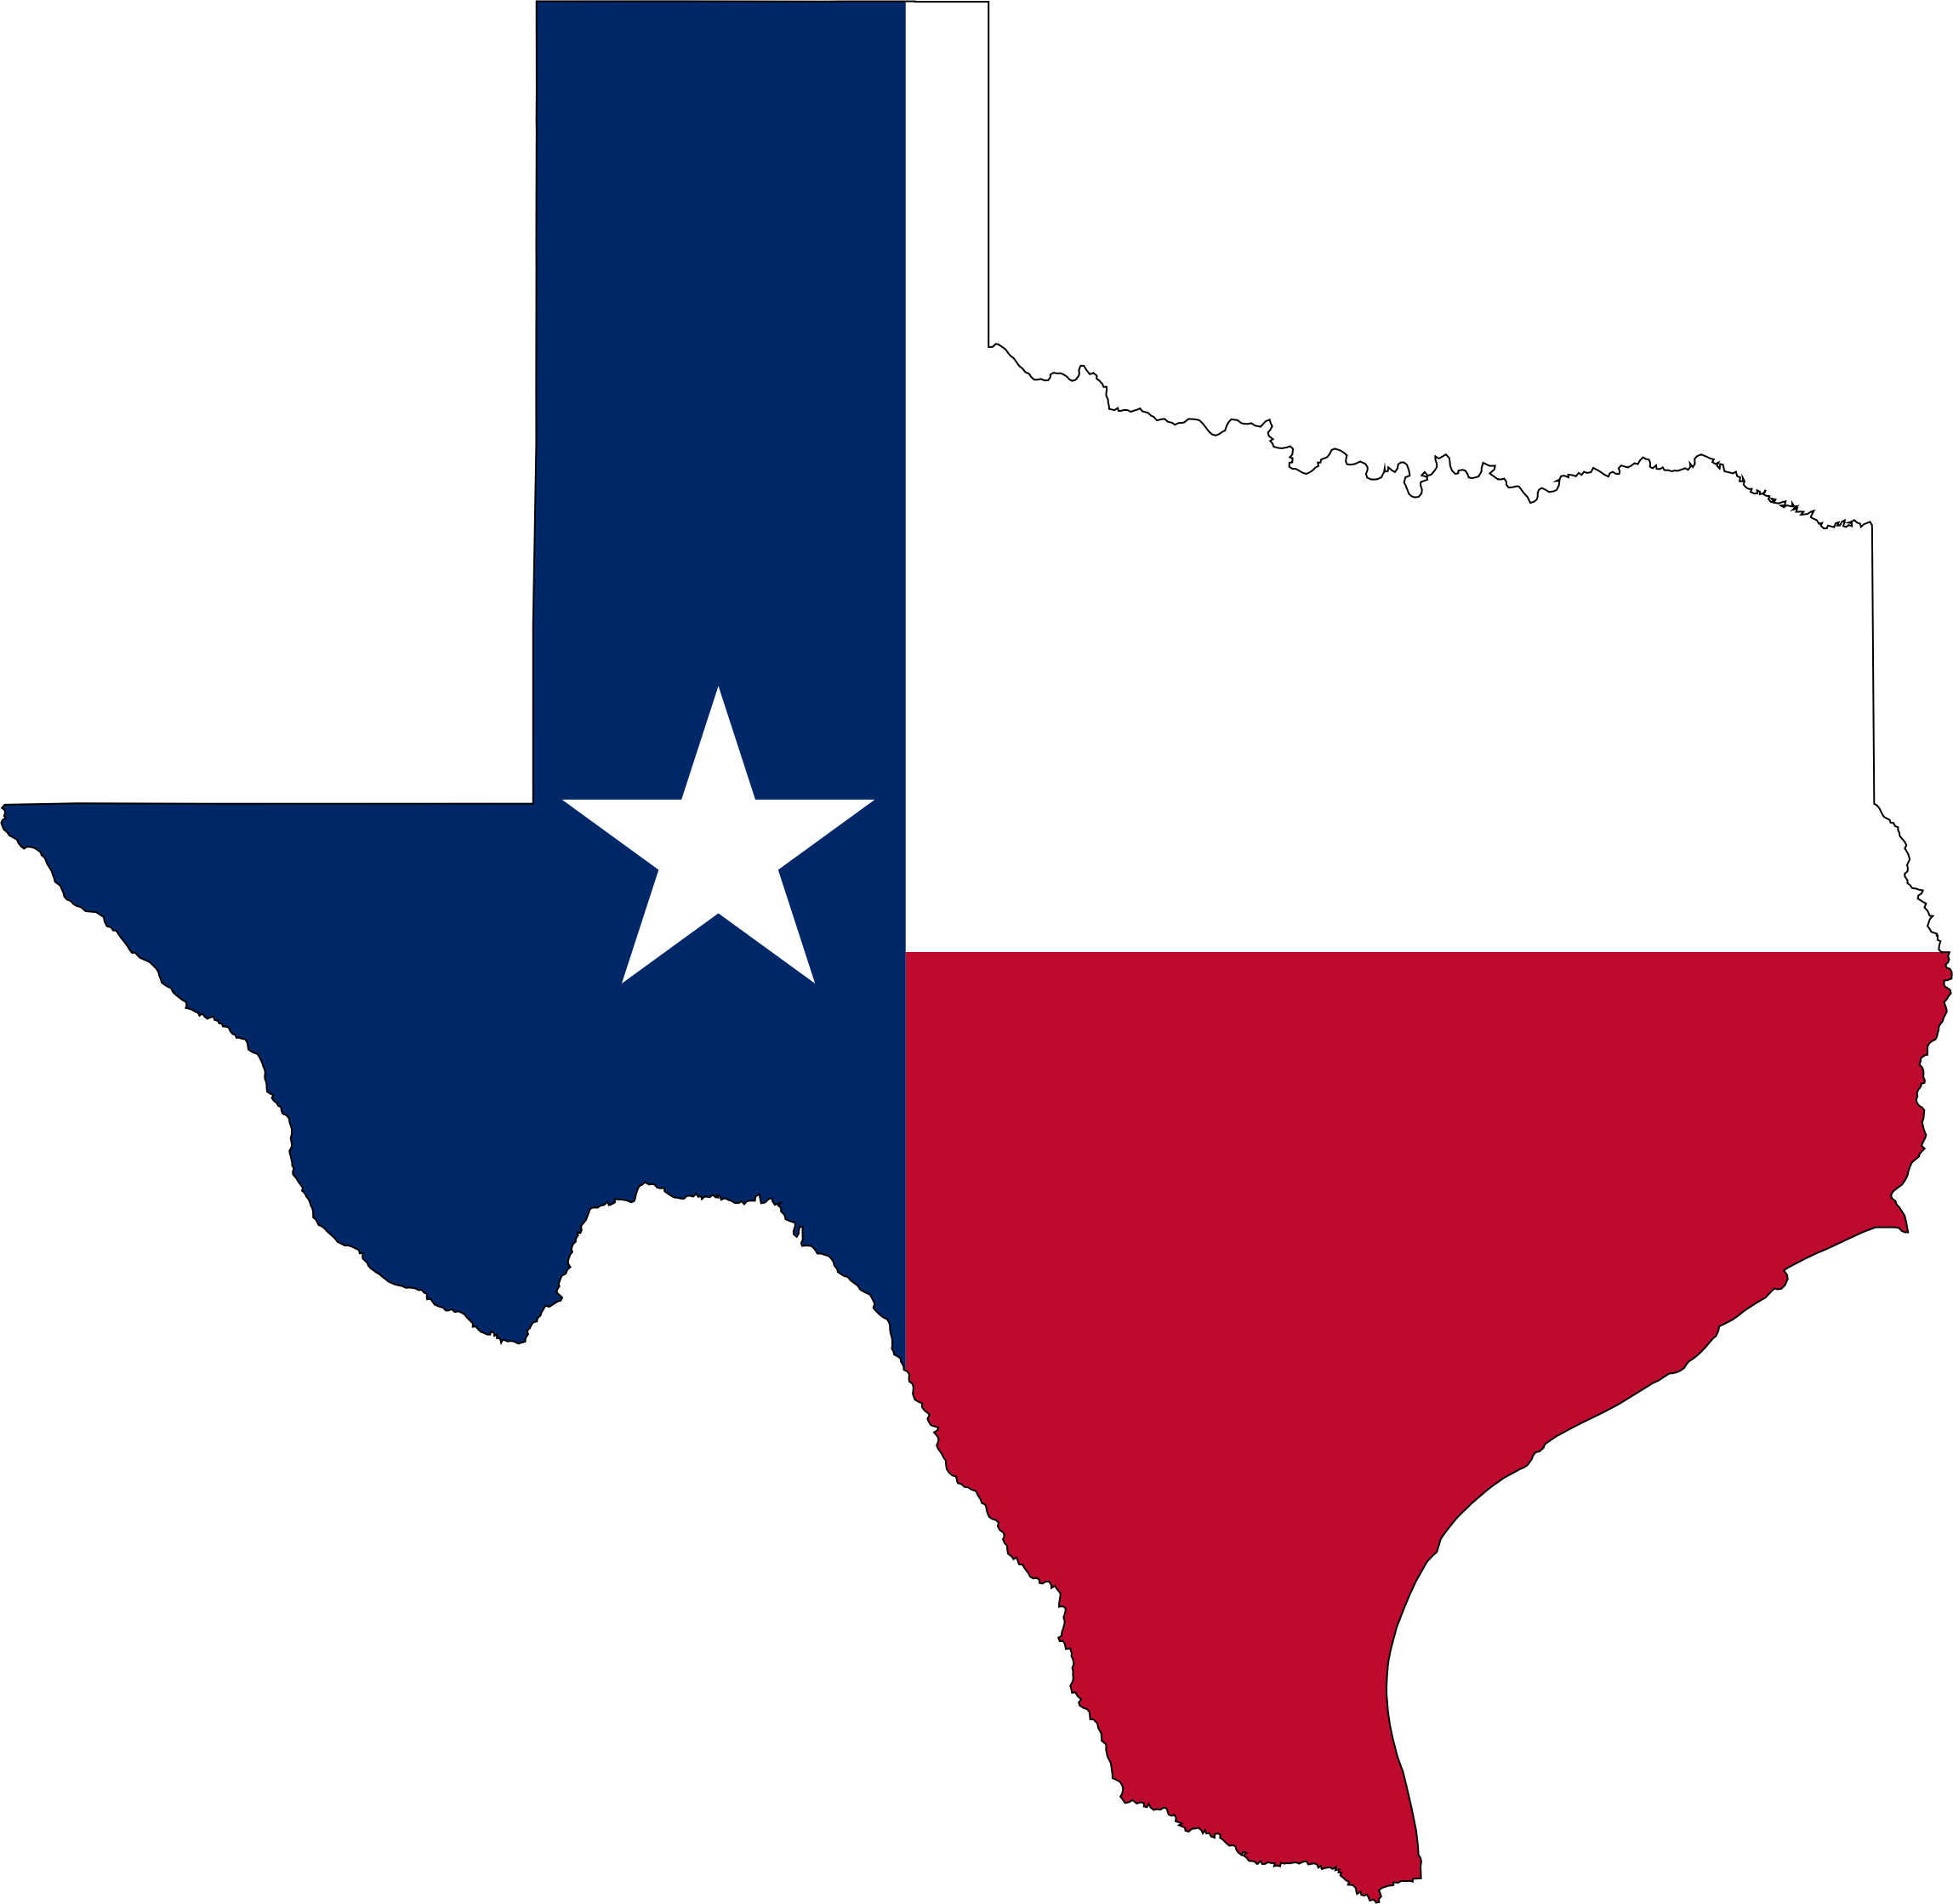 Texas state png. Flag map icons free